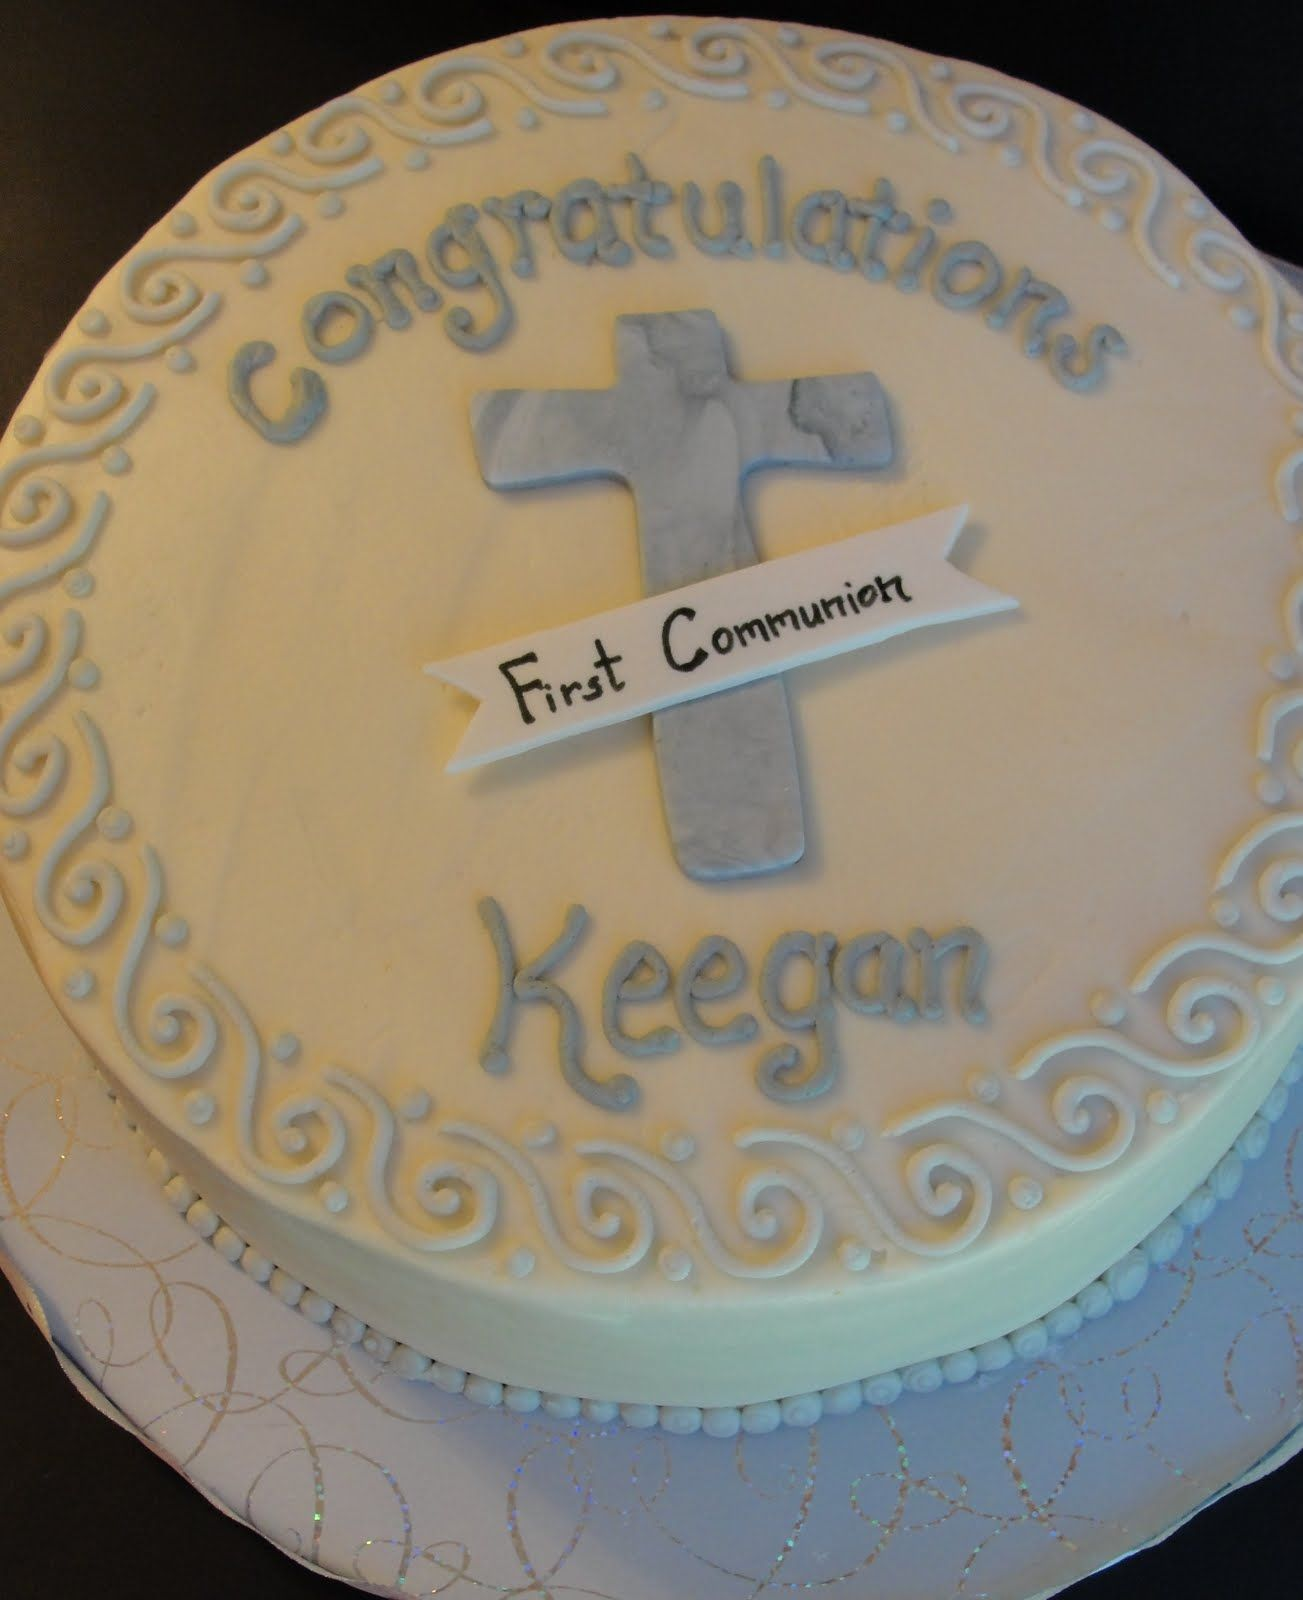 Pin communion party ideas first holy decorations cake on pinterest - Holy communion cake decorations ...